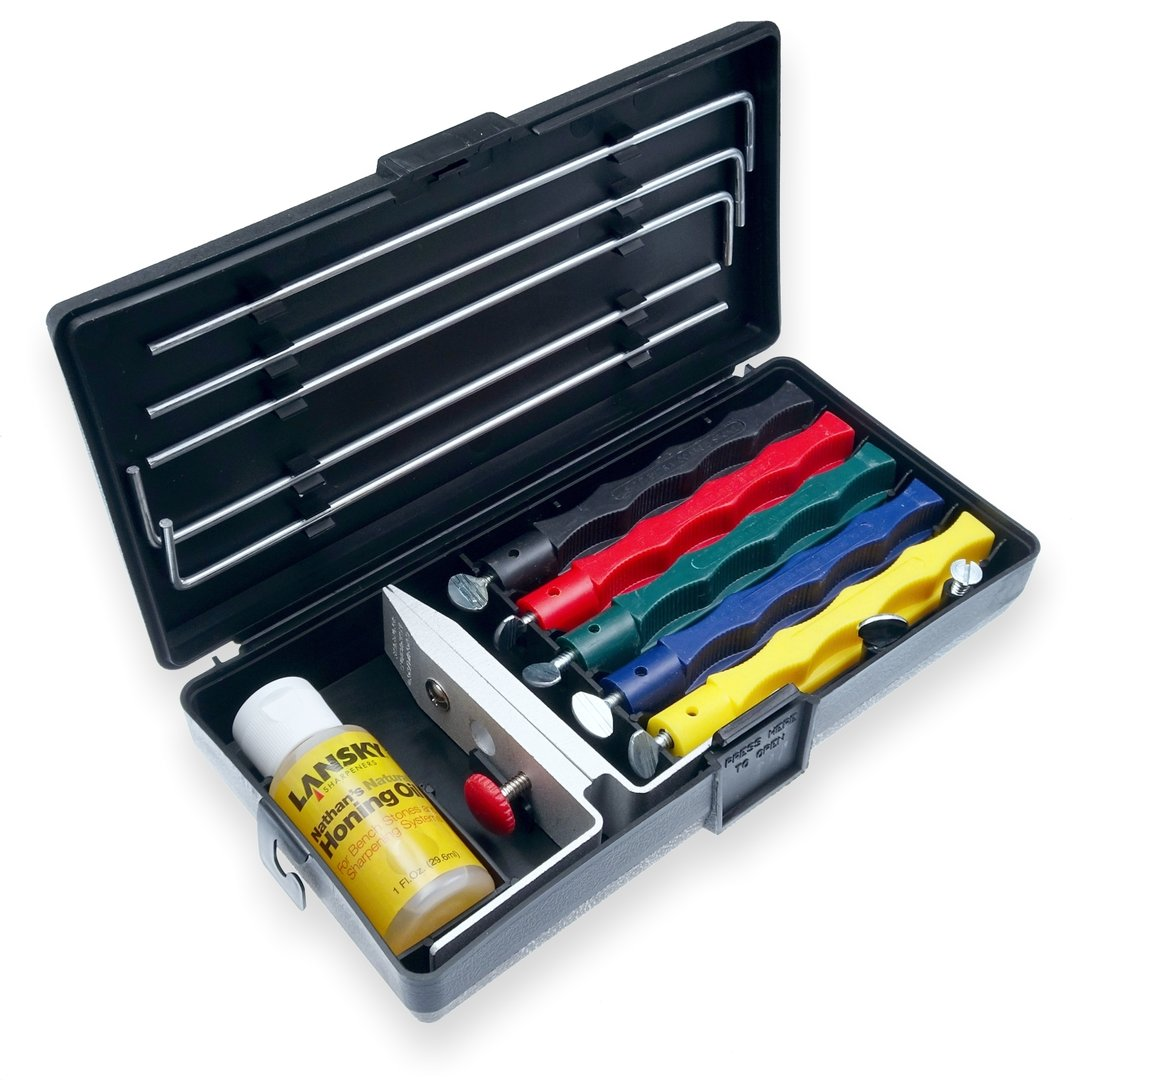 Deluxe 5-Stone Sharpening System 1 Pack